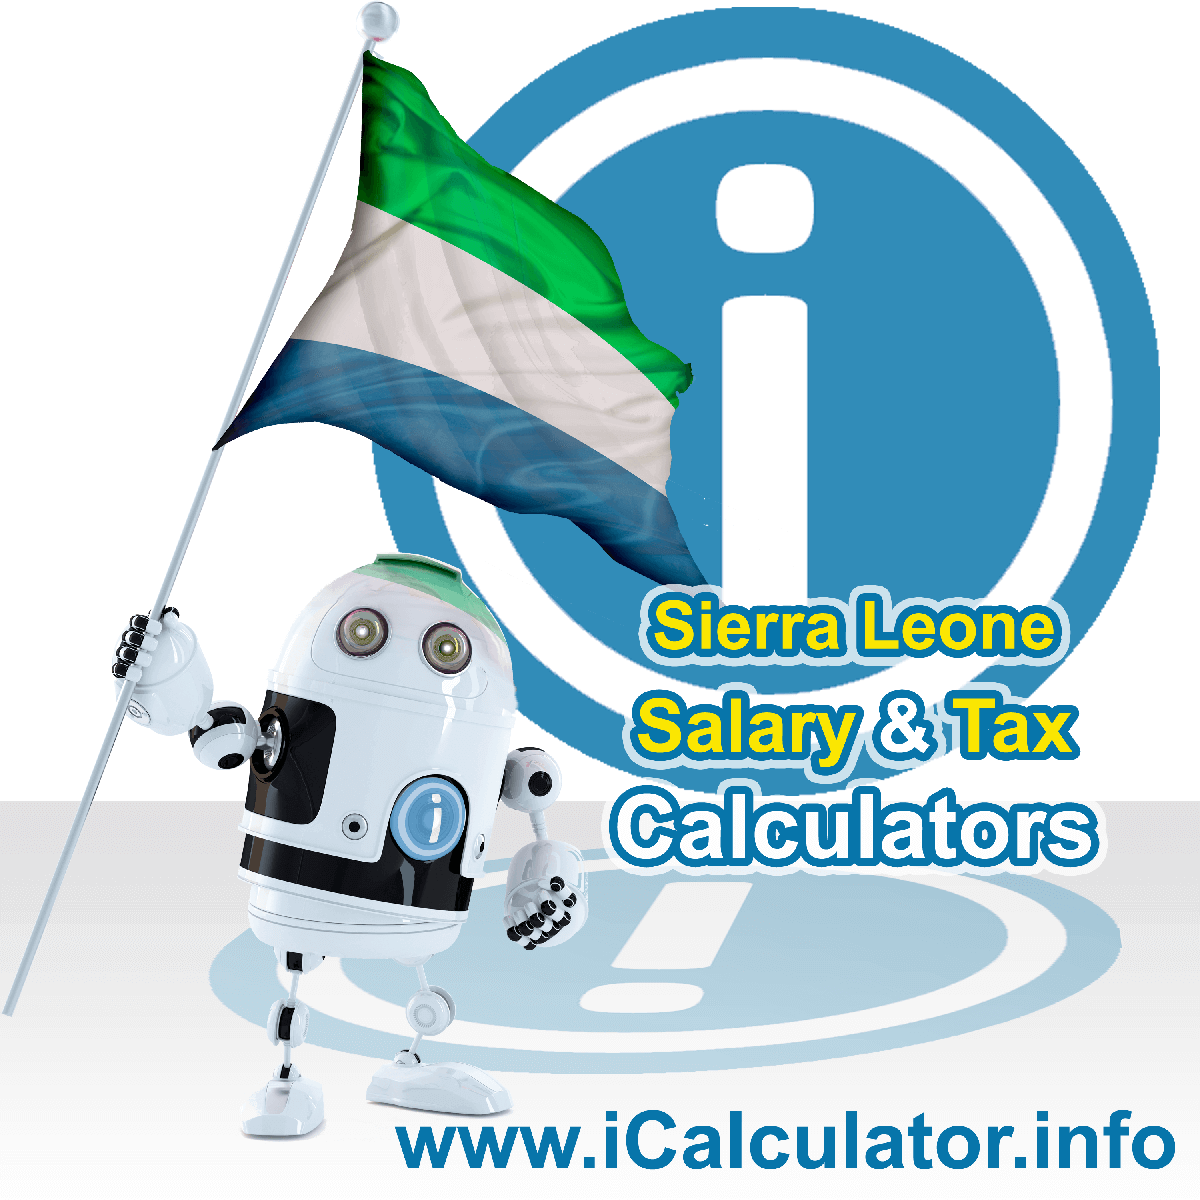 Sierra Leone Wage Calculator. This image shows the Sierra Leone flag and information relating to the tax formula for the Sierra Leone Tax Calculator